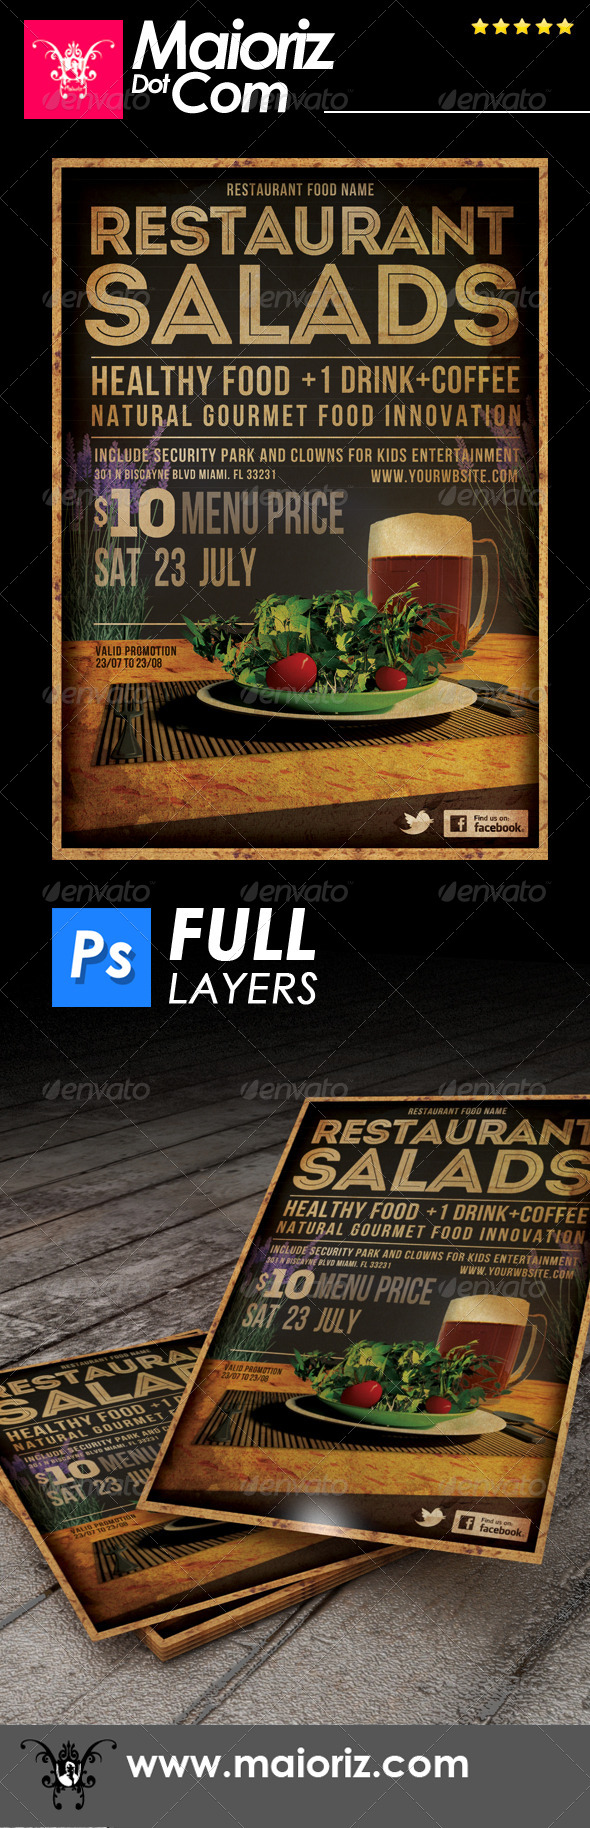 Restaurant Salads Flyer